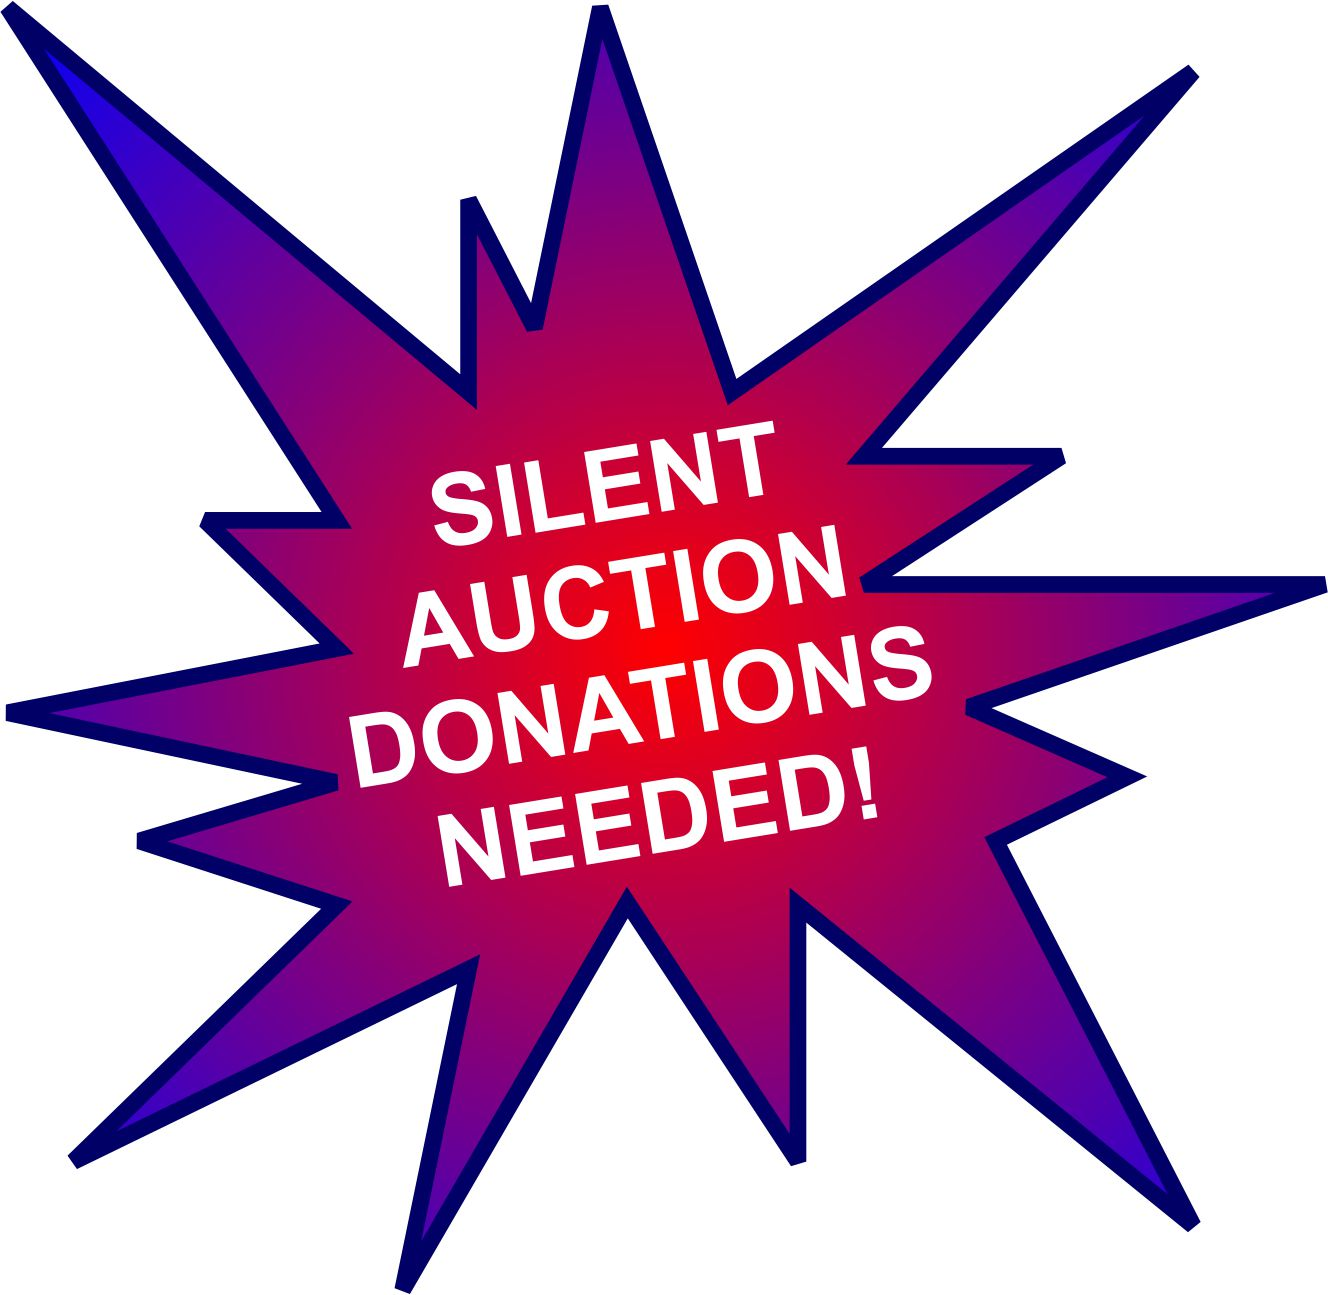 Please help our auction!